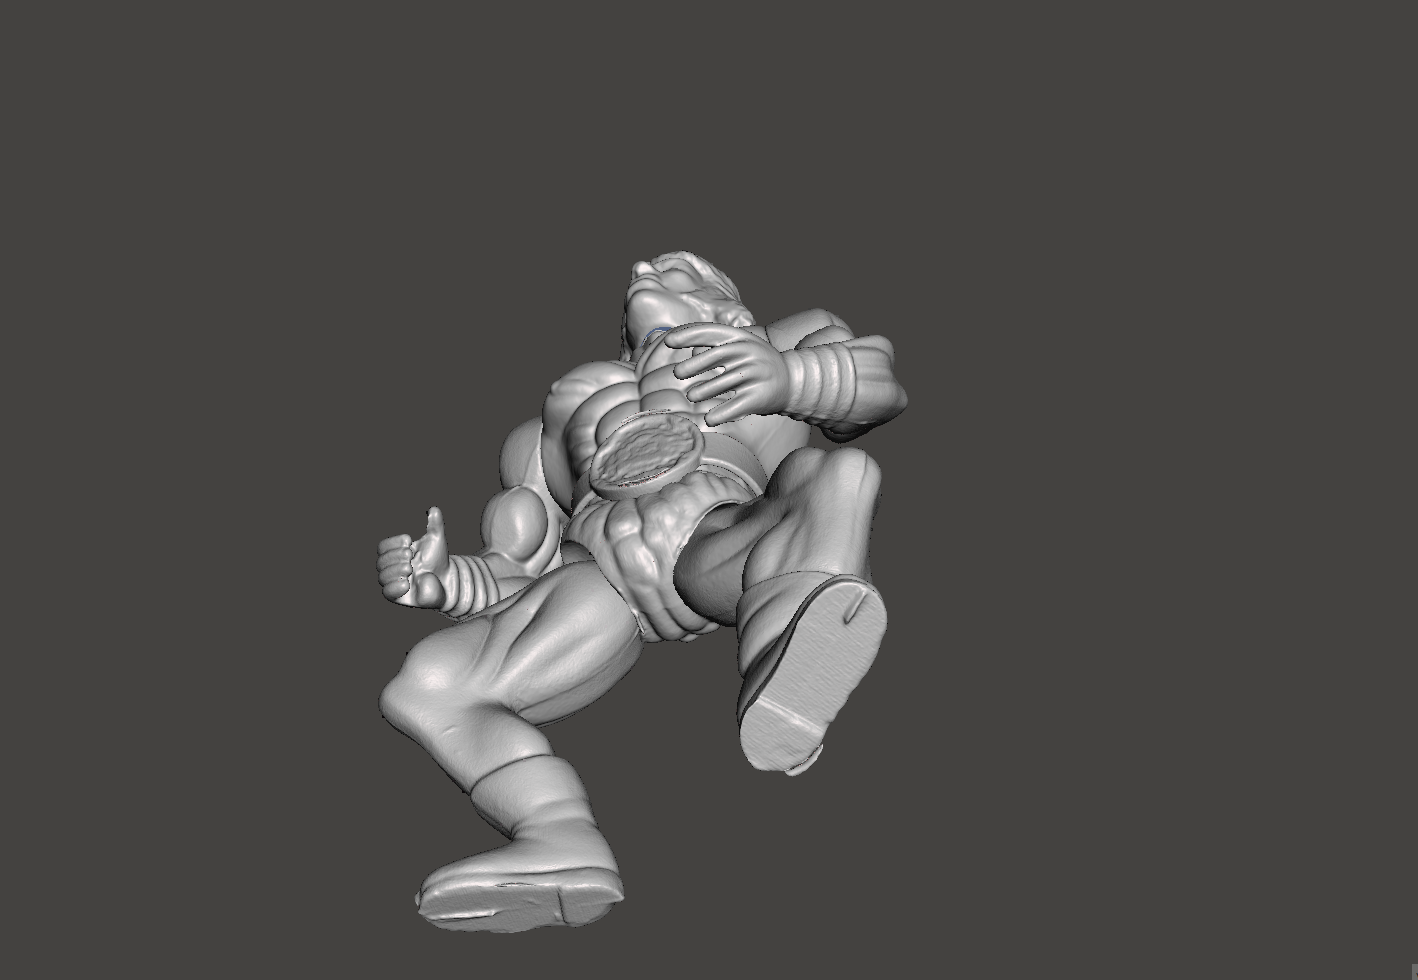 06_GXF.png Download STL file BOOTLEG GALAXY FIGHTER, GALAXY WARRIOR 2 • 3D printing object, MisJuguetes